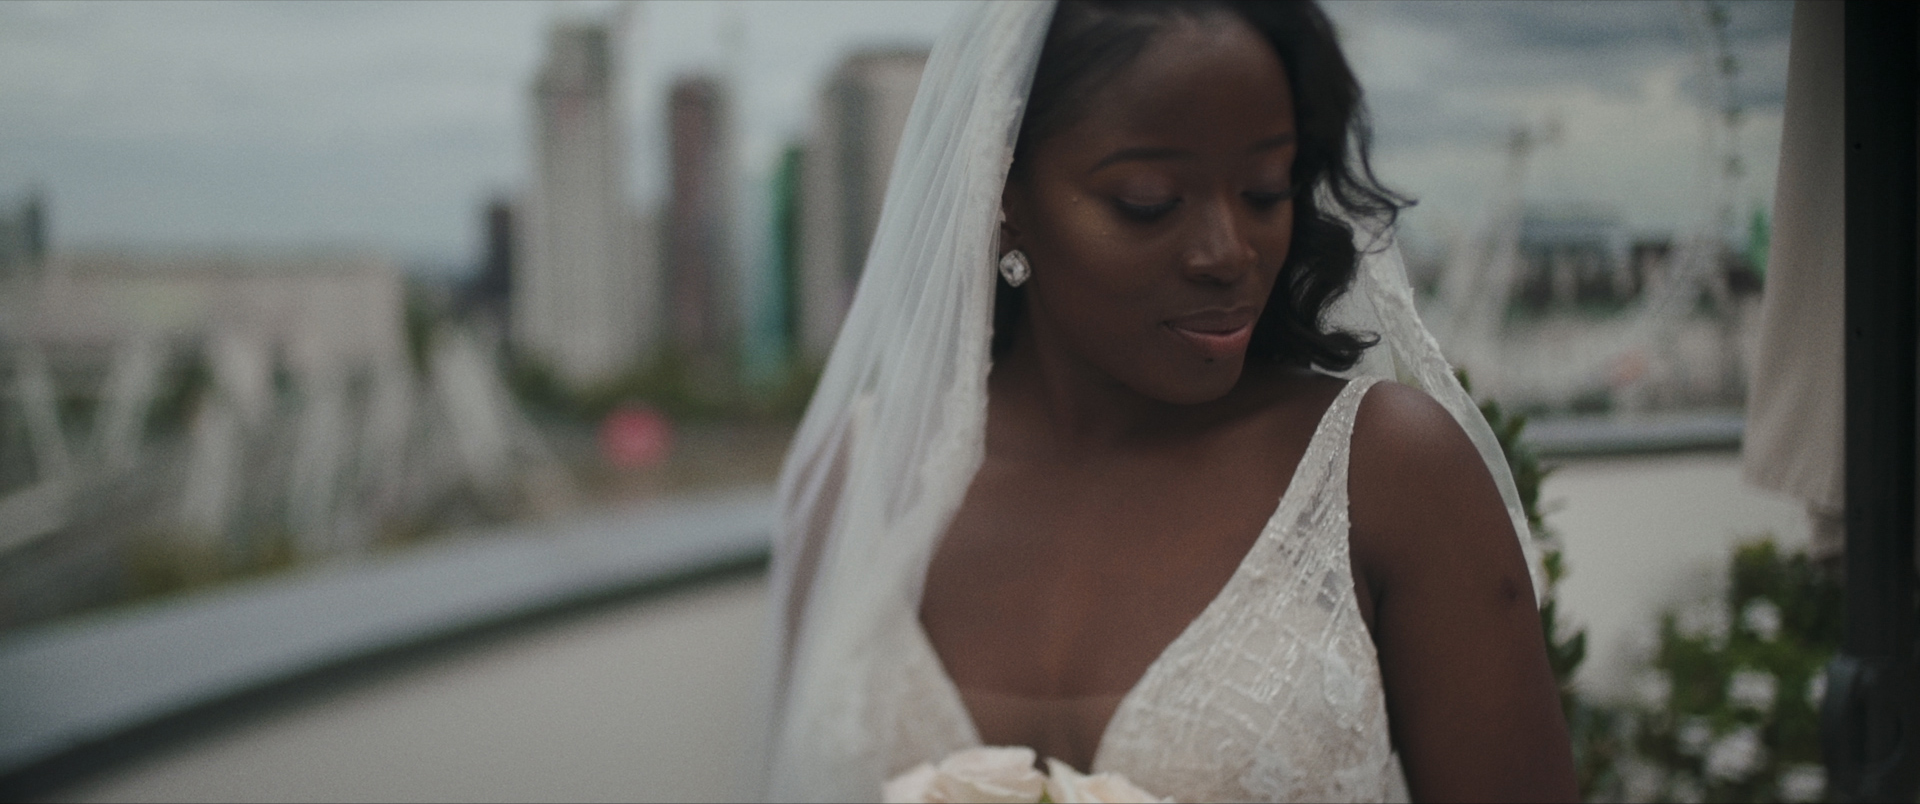 moon-river-wedding-videography-london-north east